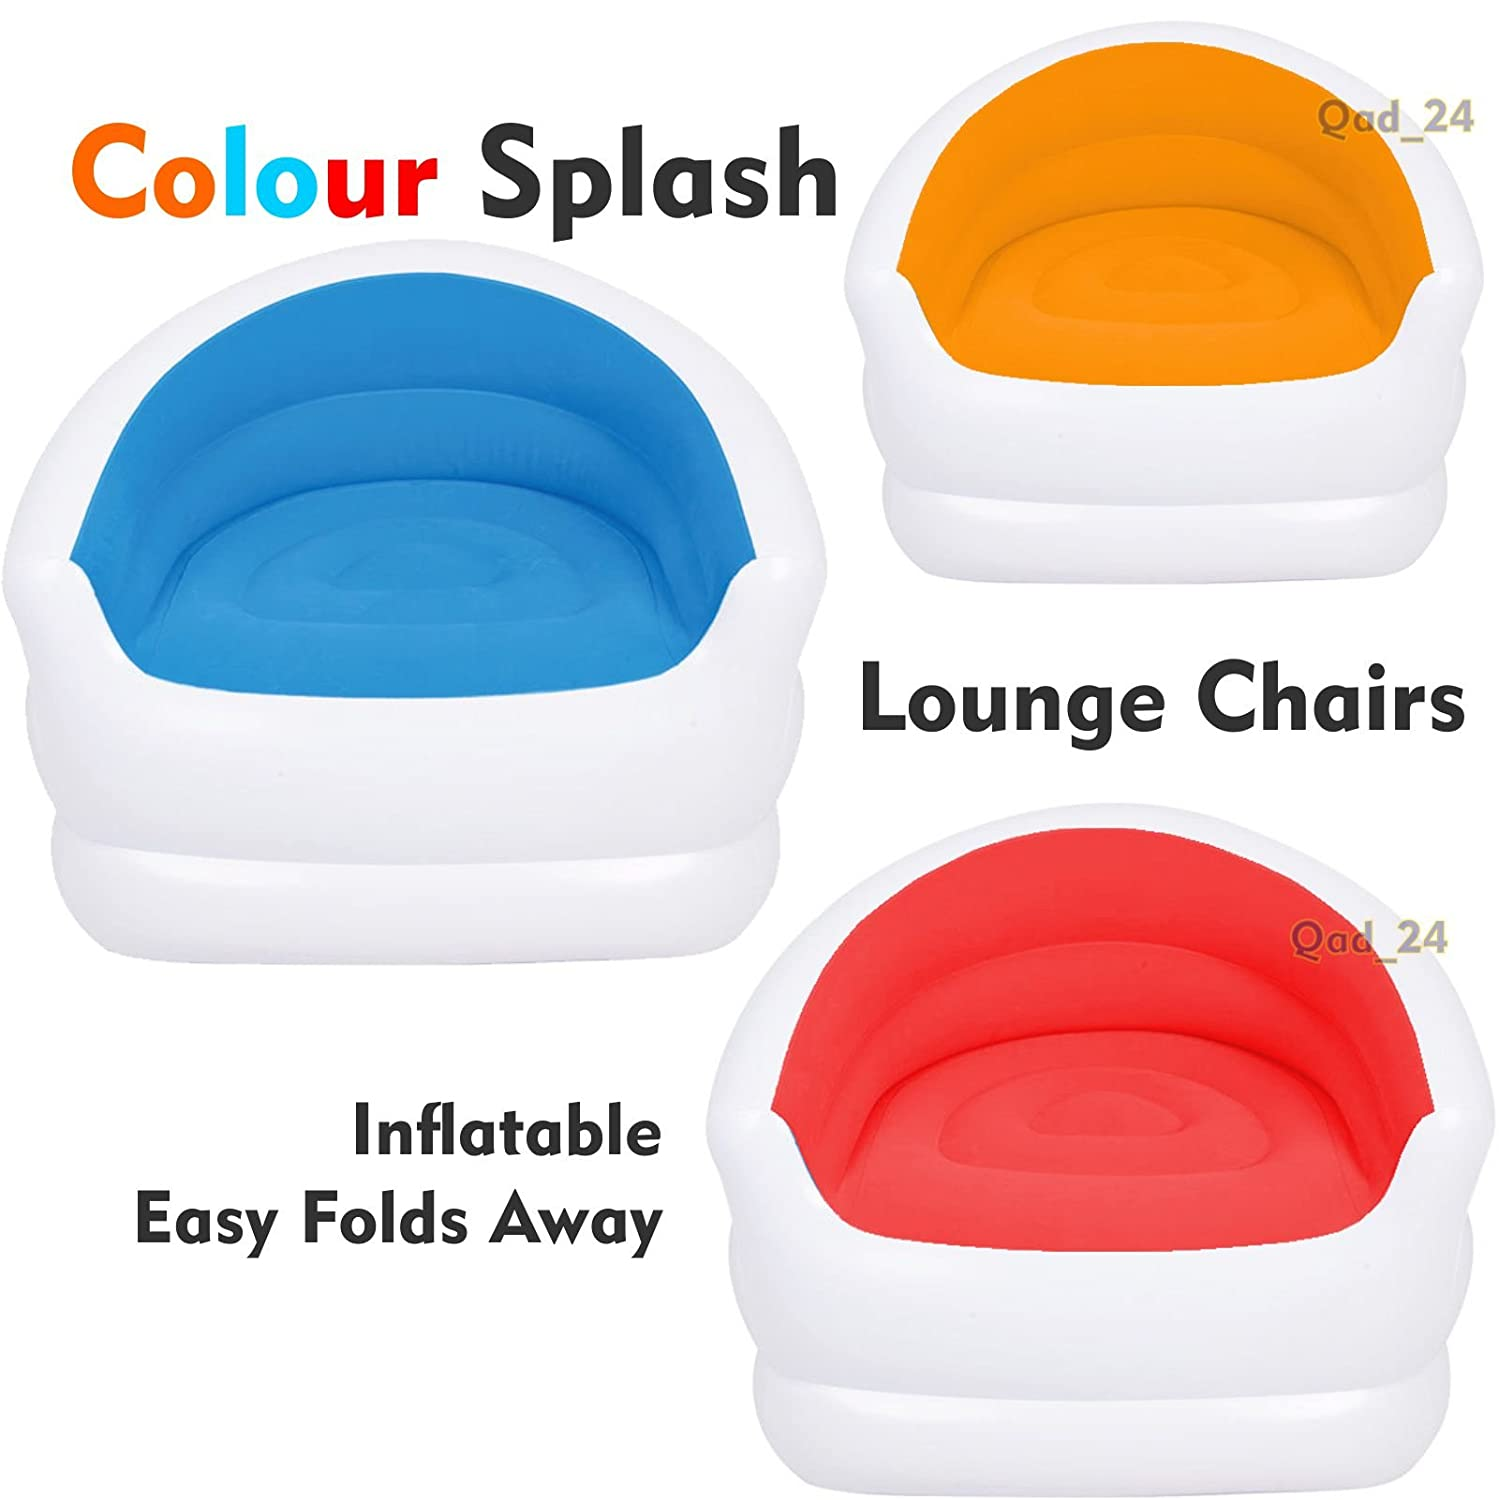 Sensational Colour Splash Lounge Chair Seat Inflatable Couch Sofa Camping Gaming Pod Beach Orange Dailytribune Chair Design For Home Dailytribuneorg